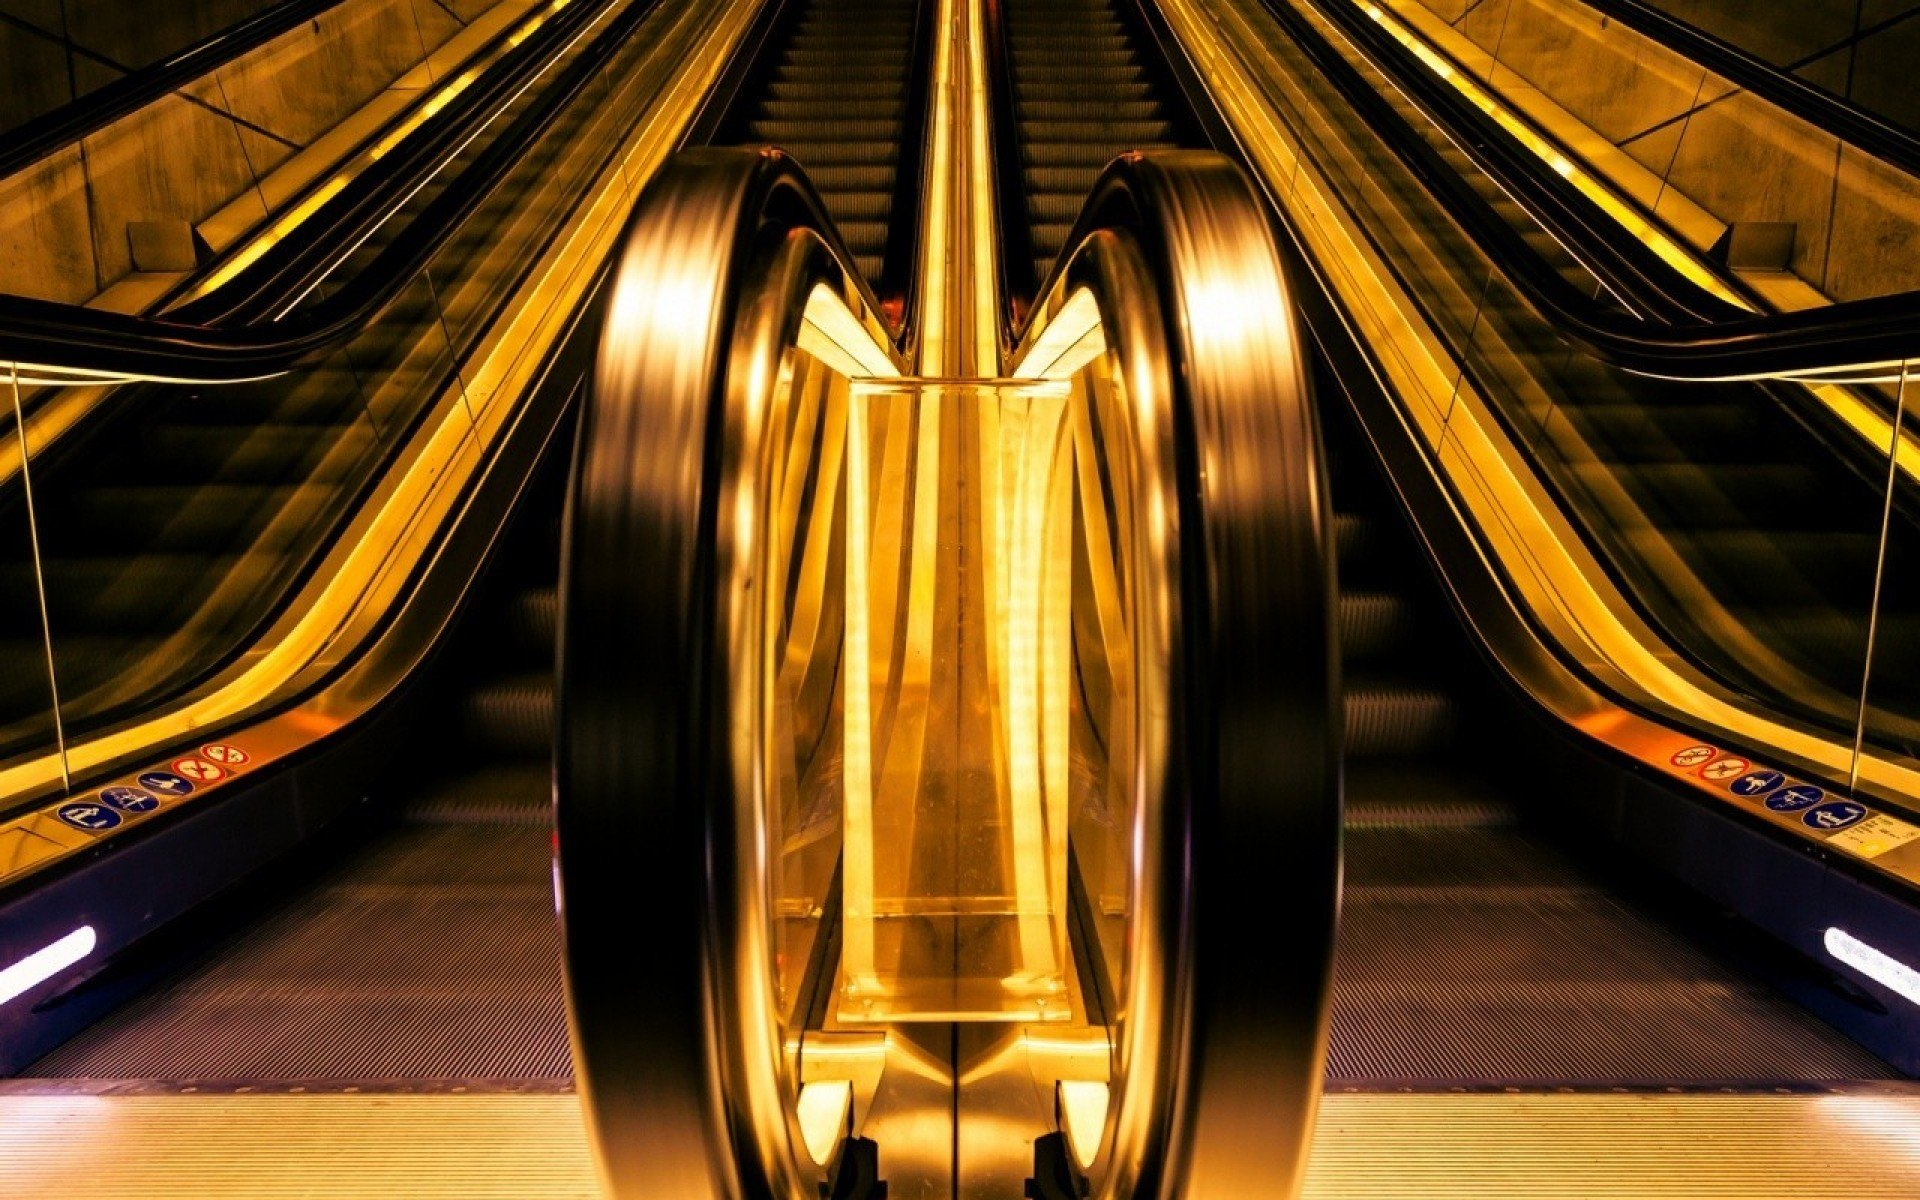 Cool Escalator Wallpaper